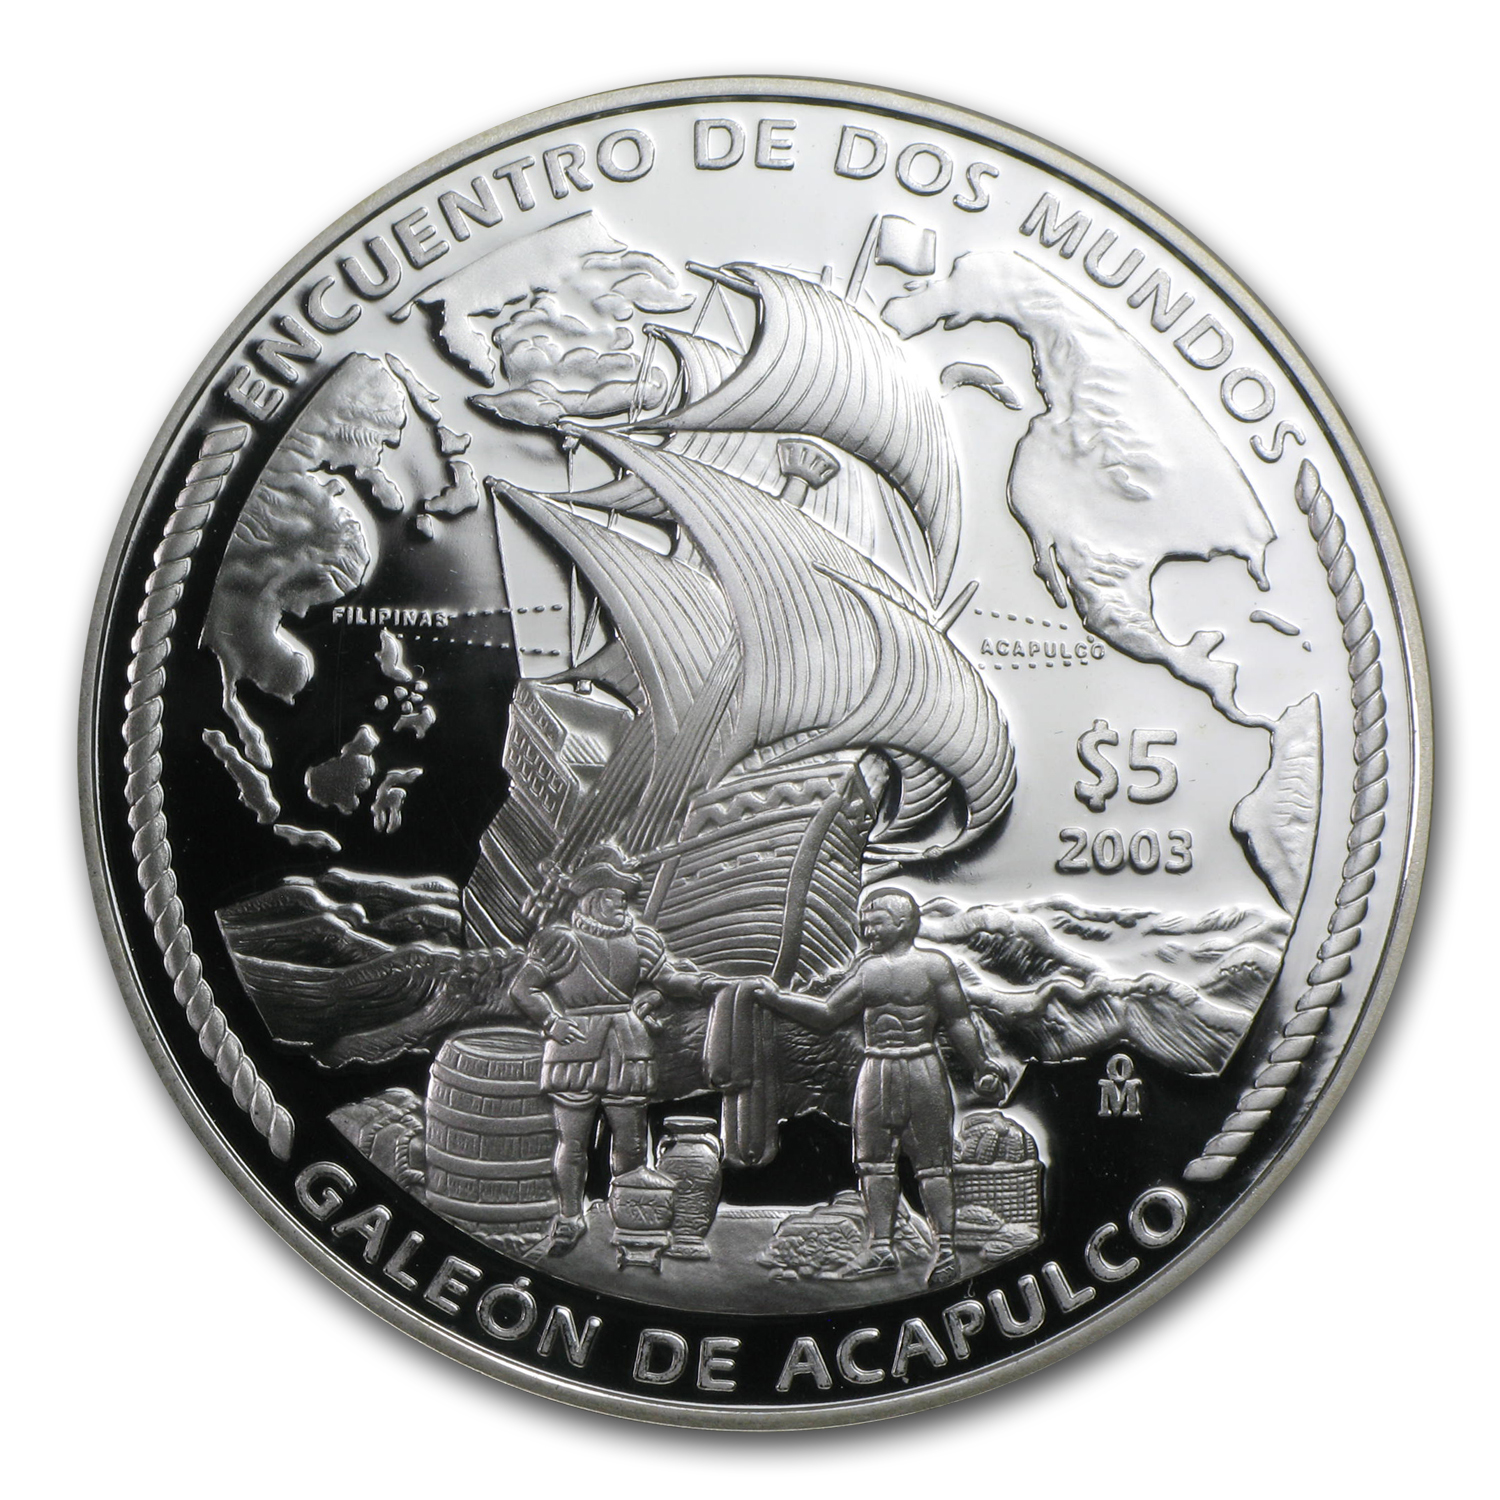 2003 Mexico Silver Peso $5 Acapulco Galleon Proof